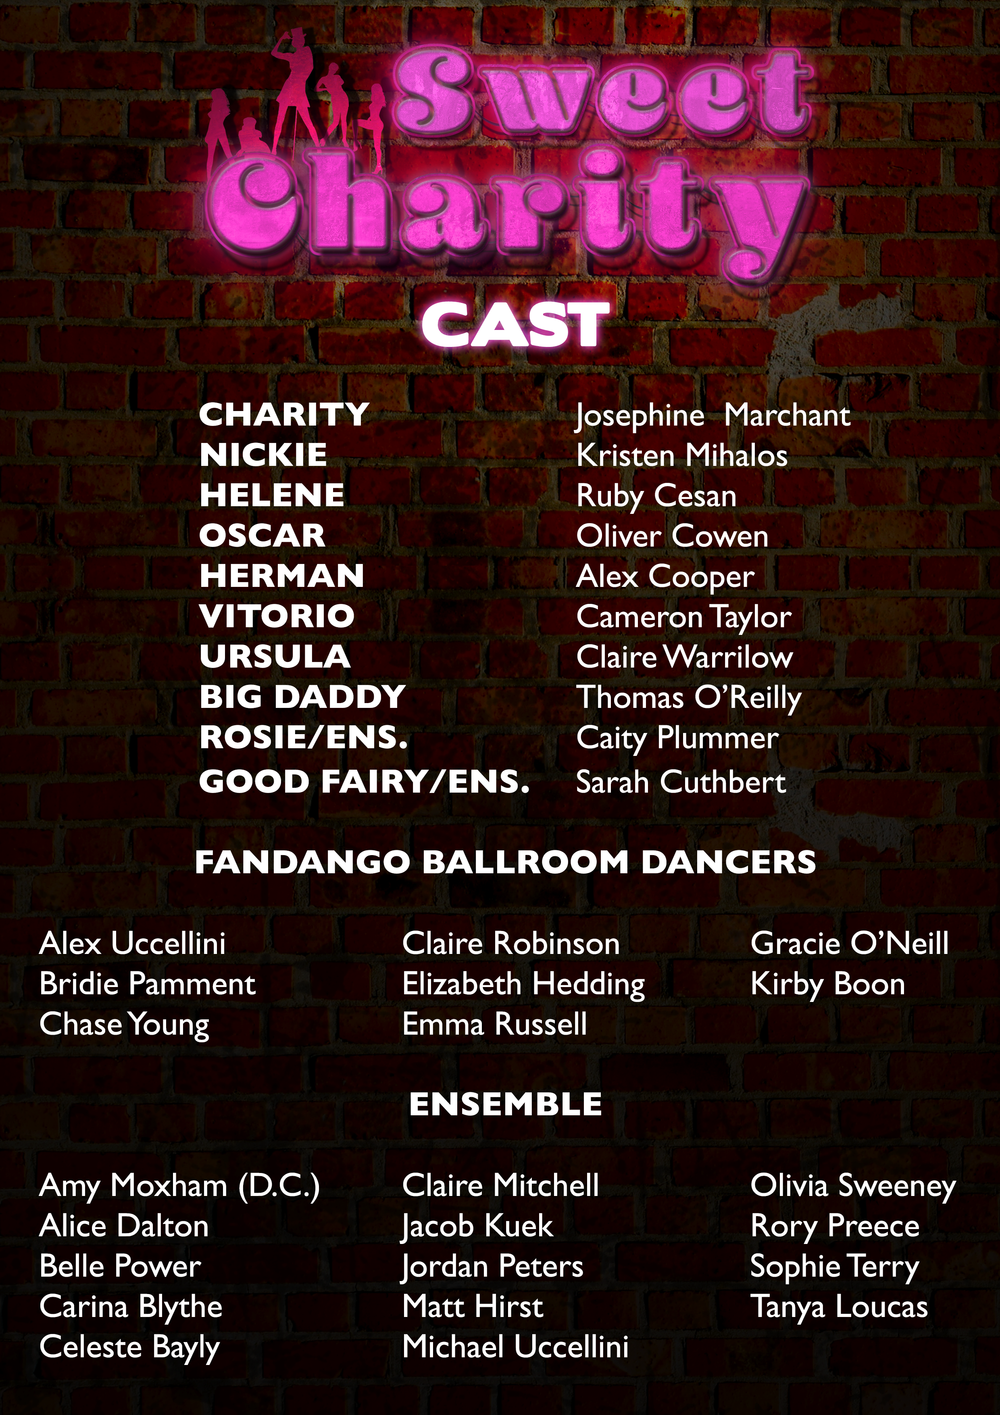 Here is it! Congratulations to our cast, we can't wait to get started!